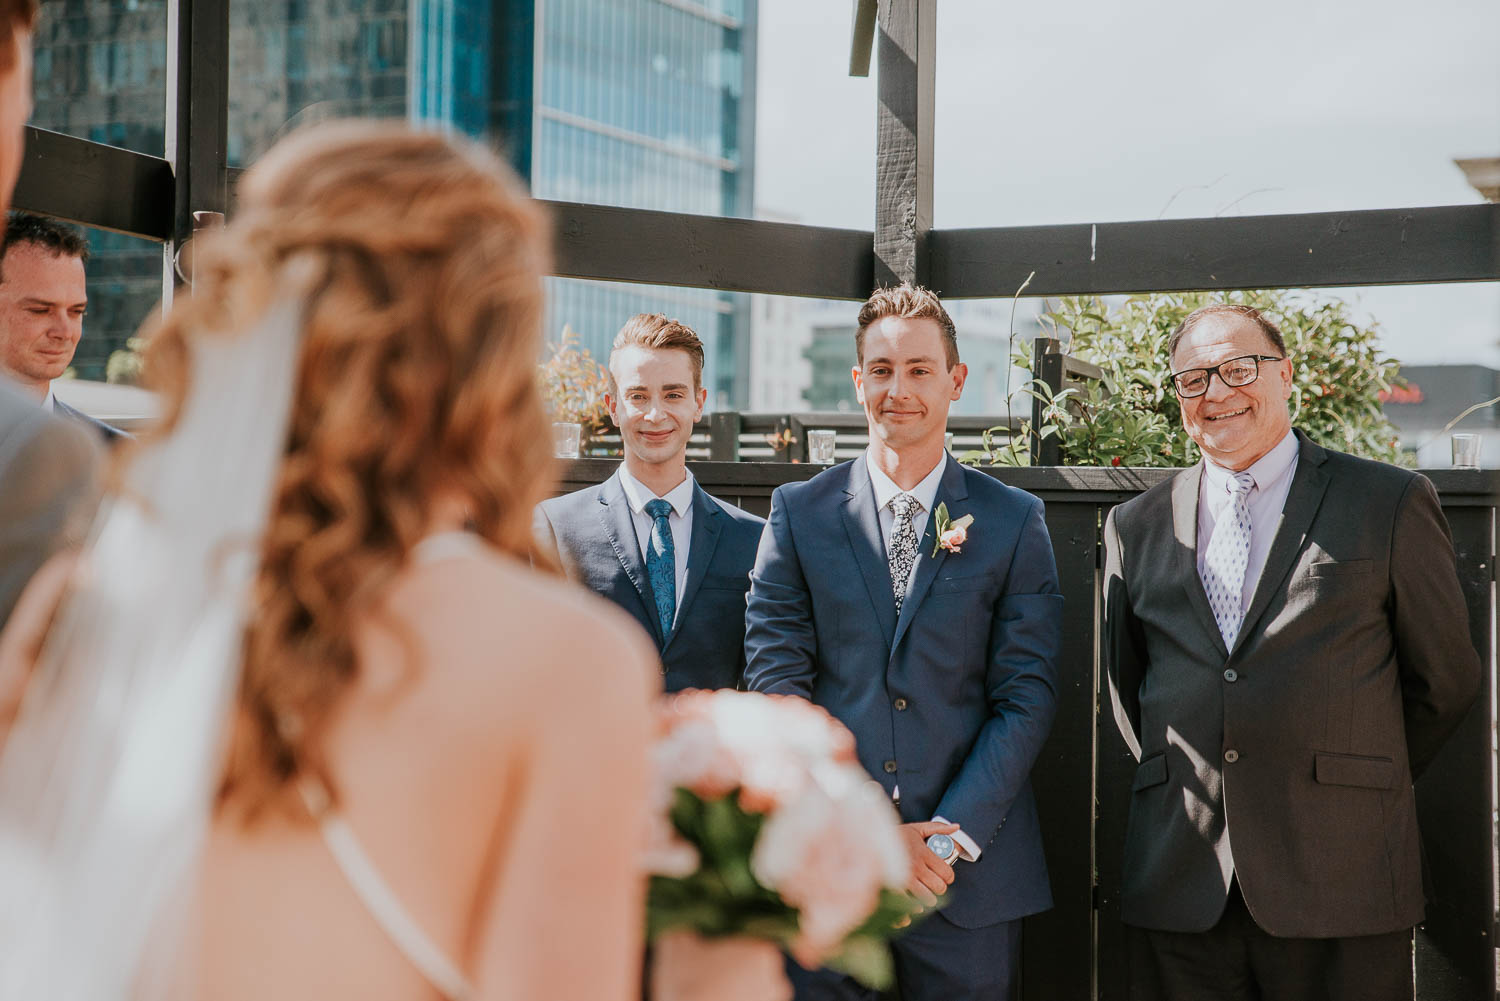 auckland-wedding-photographer-urban-city-33